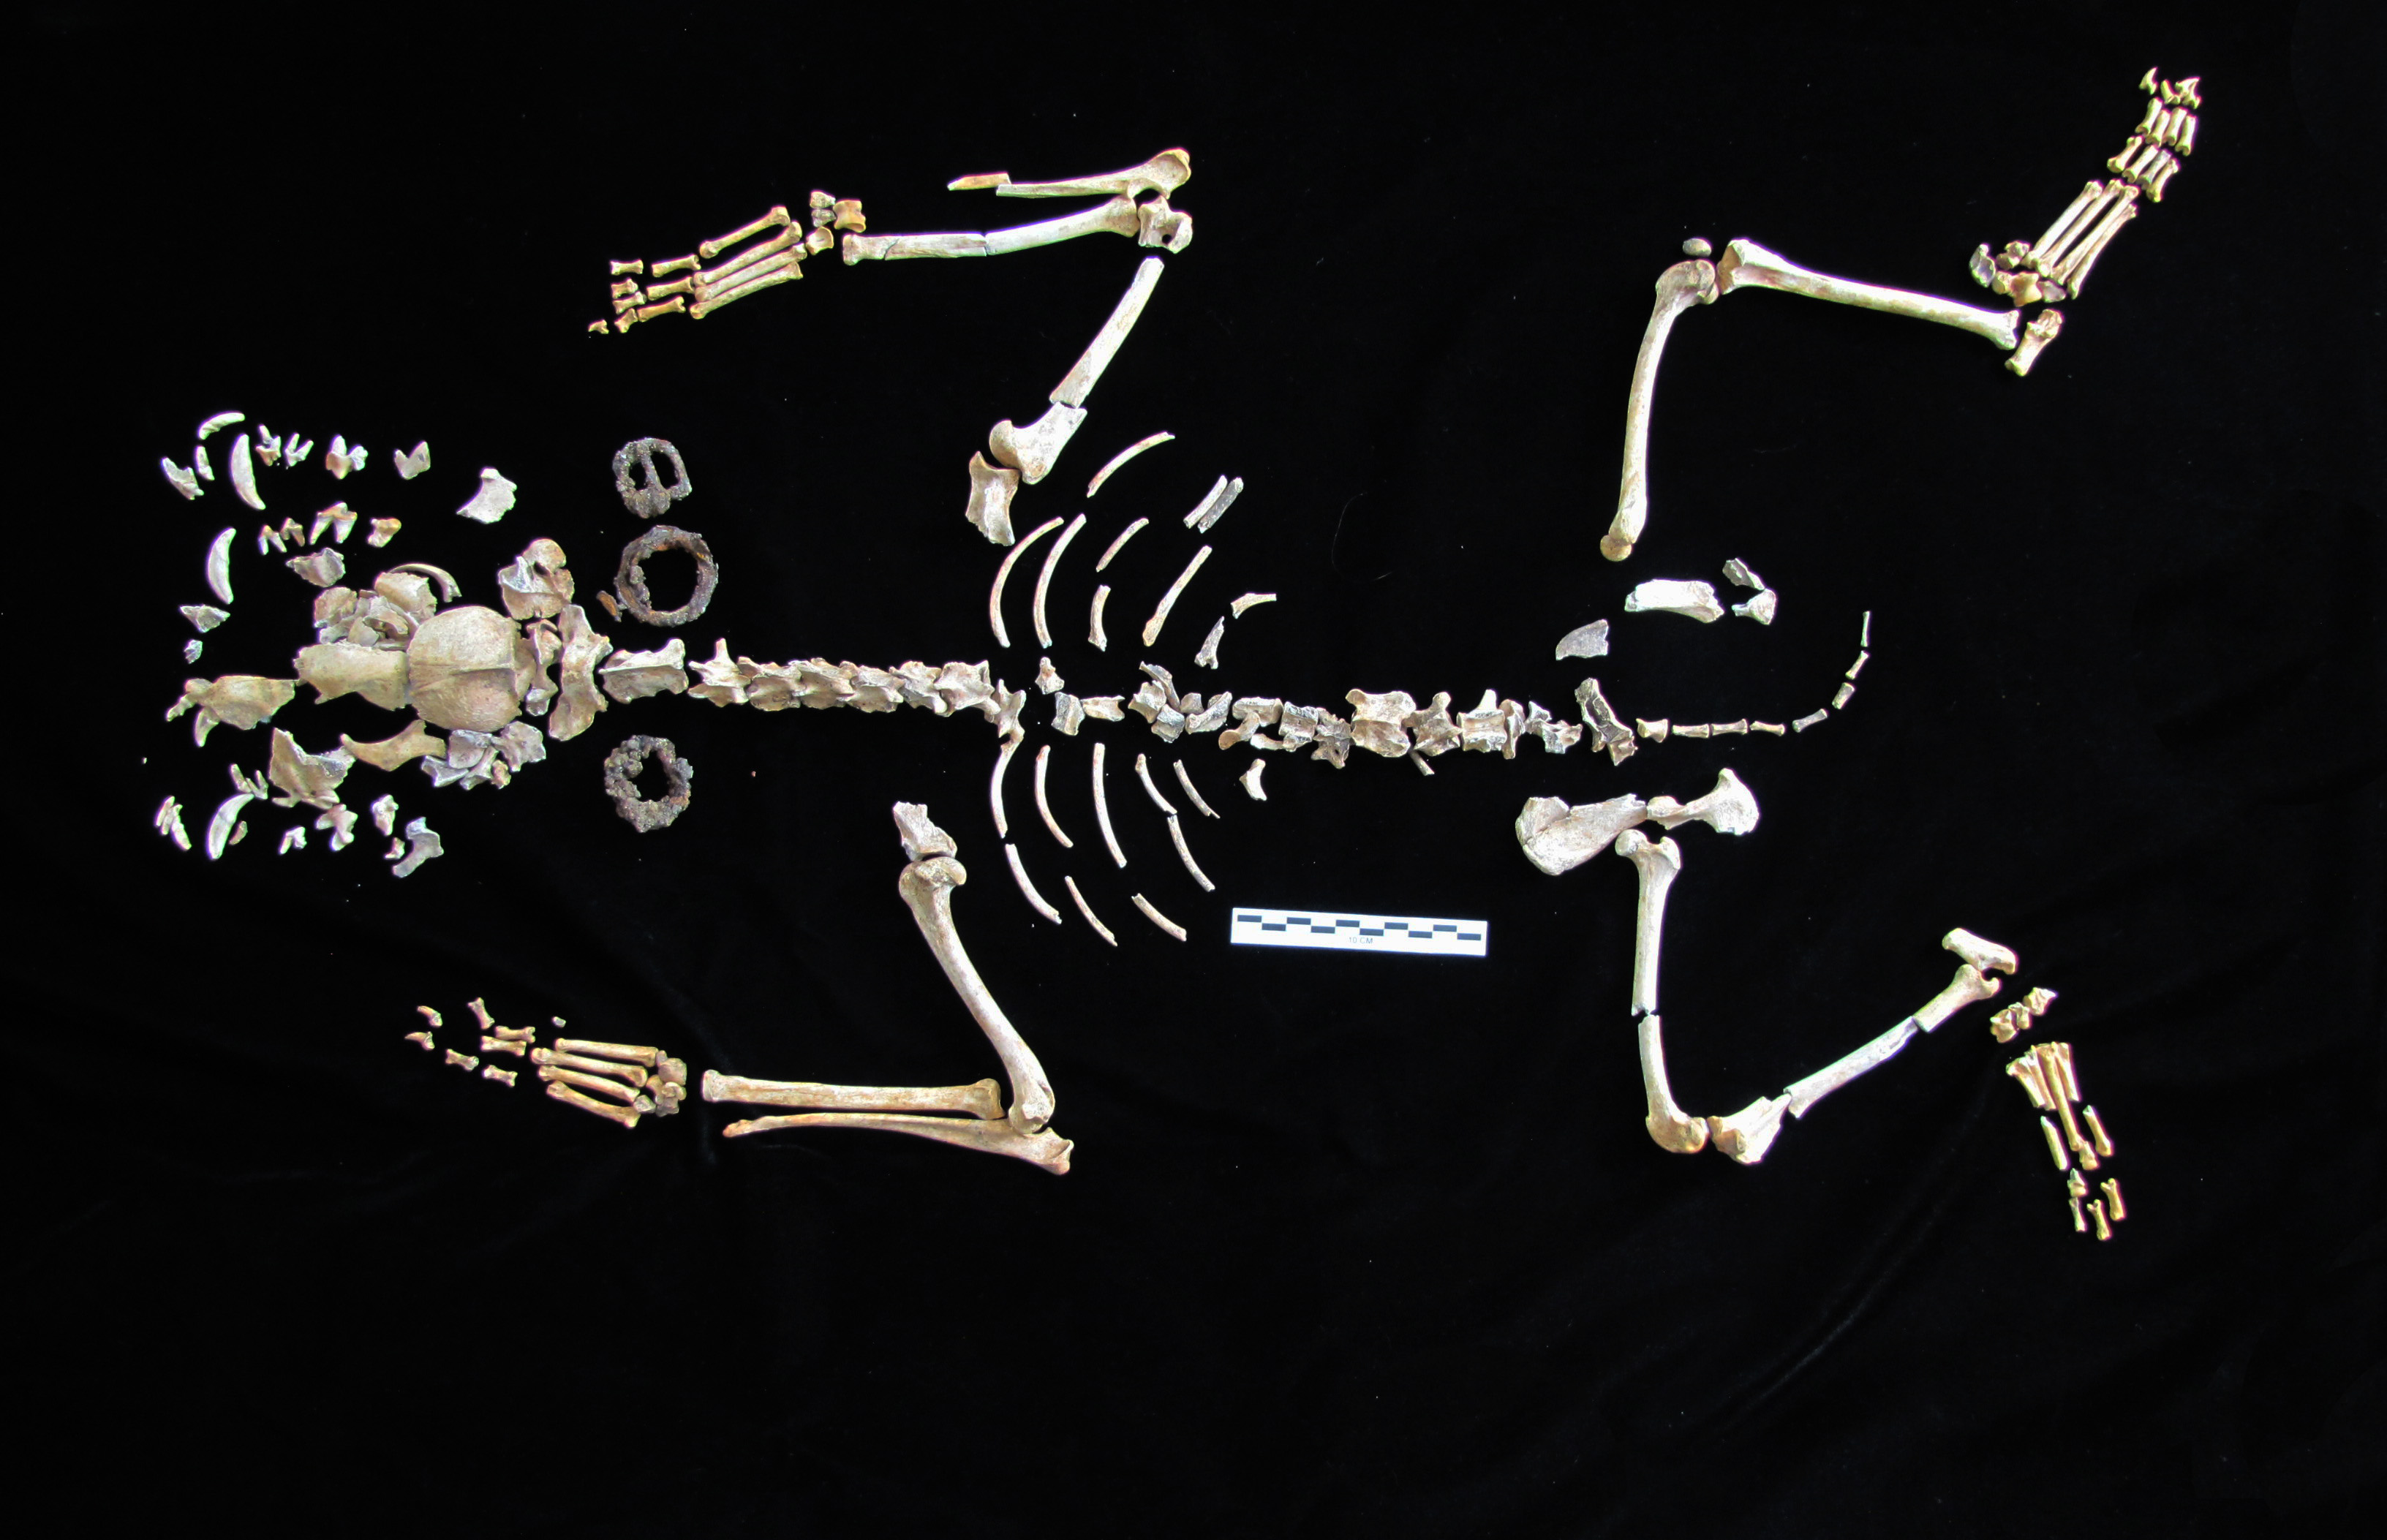 Dog Skeleton from Davenport Excavation